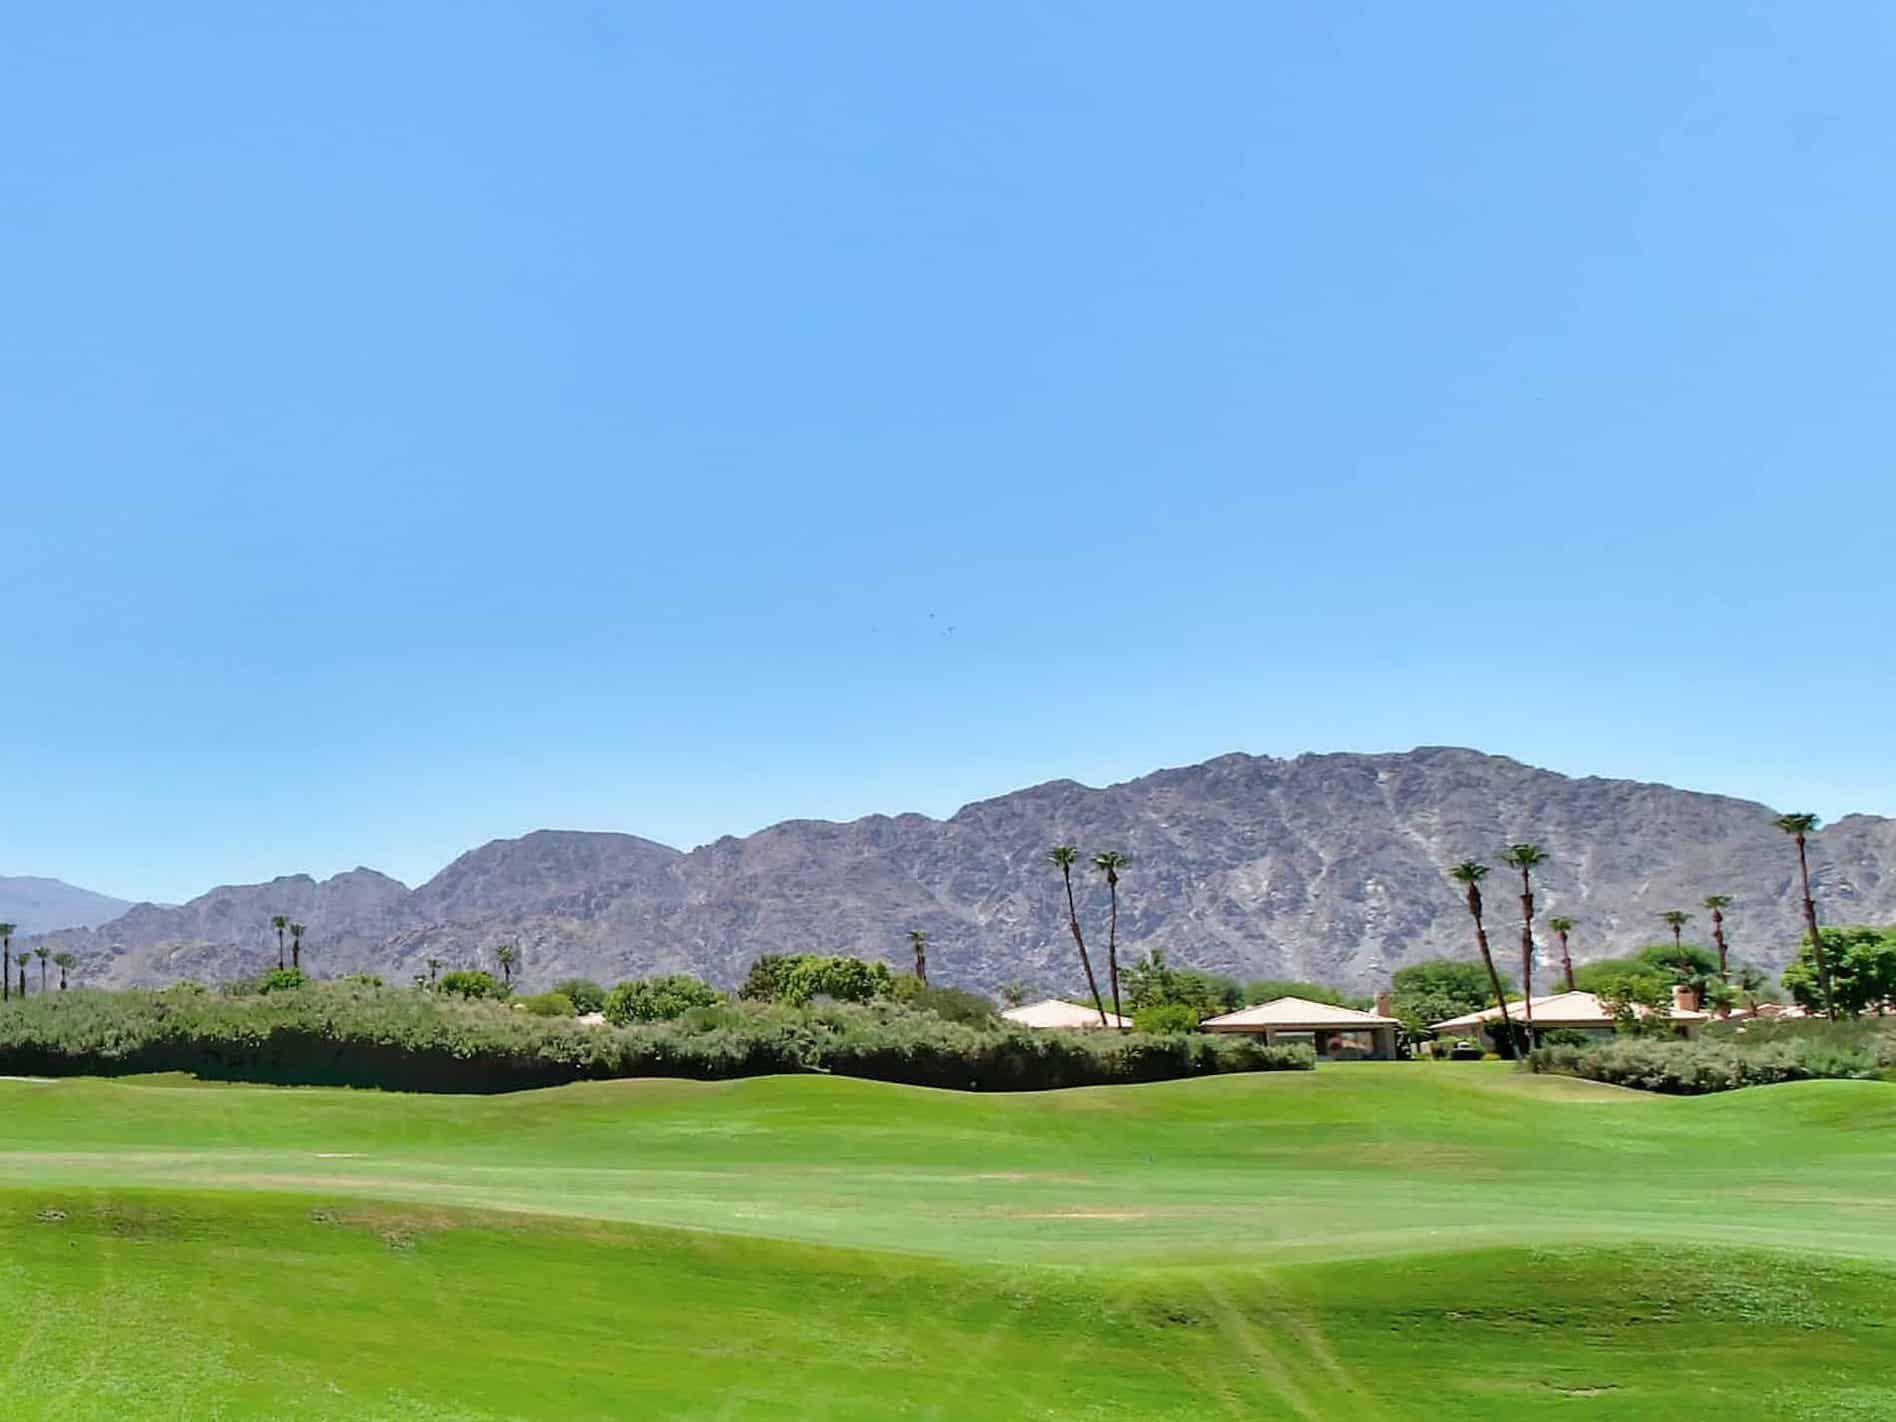 Golf course in Coachella Valley, CA